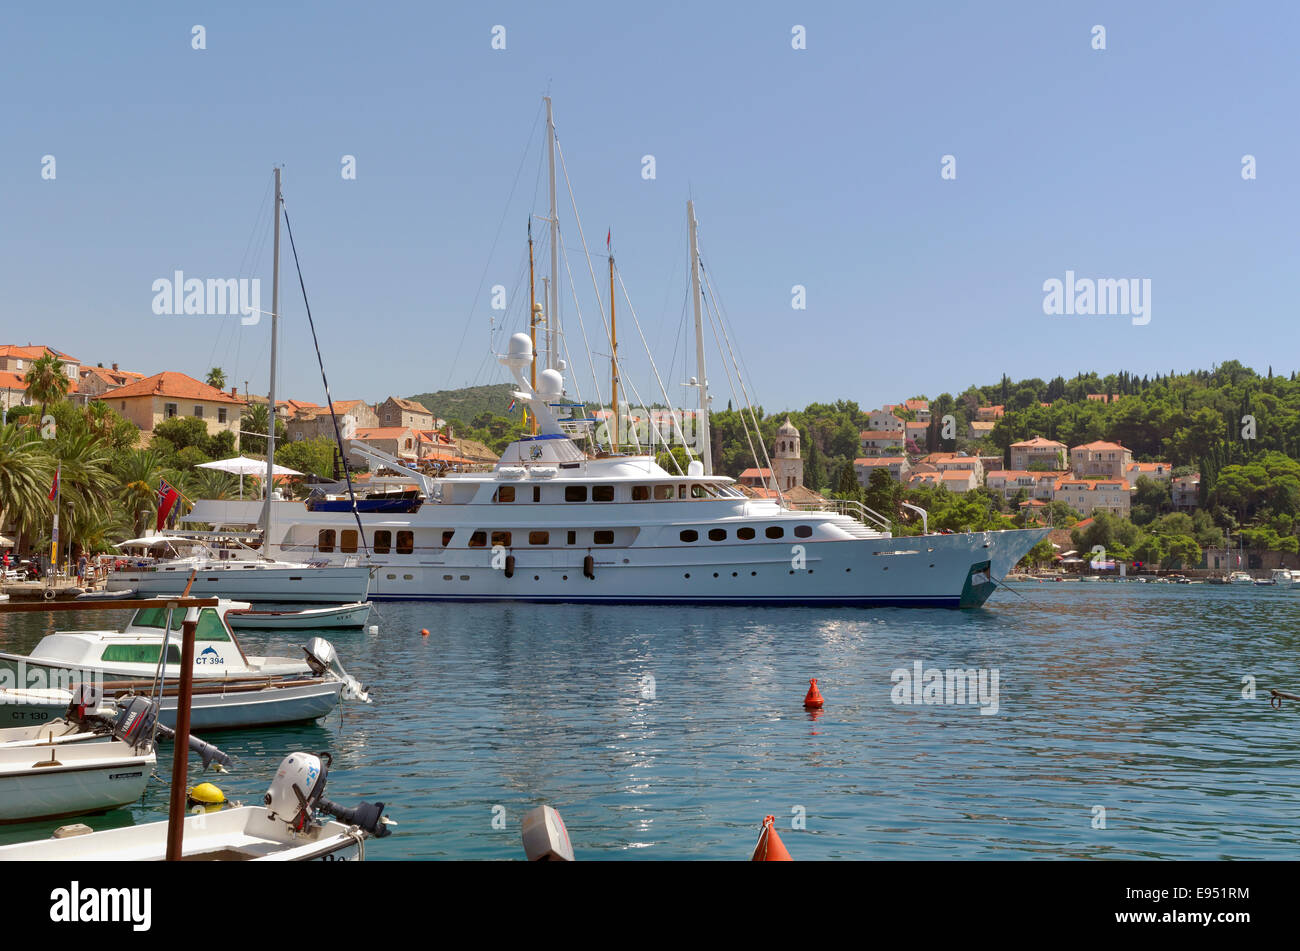 Yacht at Cavtat town near Dubrovnik, south Croatia. A 'Port of Entry' for private yachts entering or leaving Croatia. Stock Photo